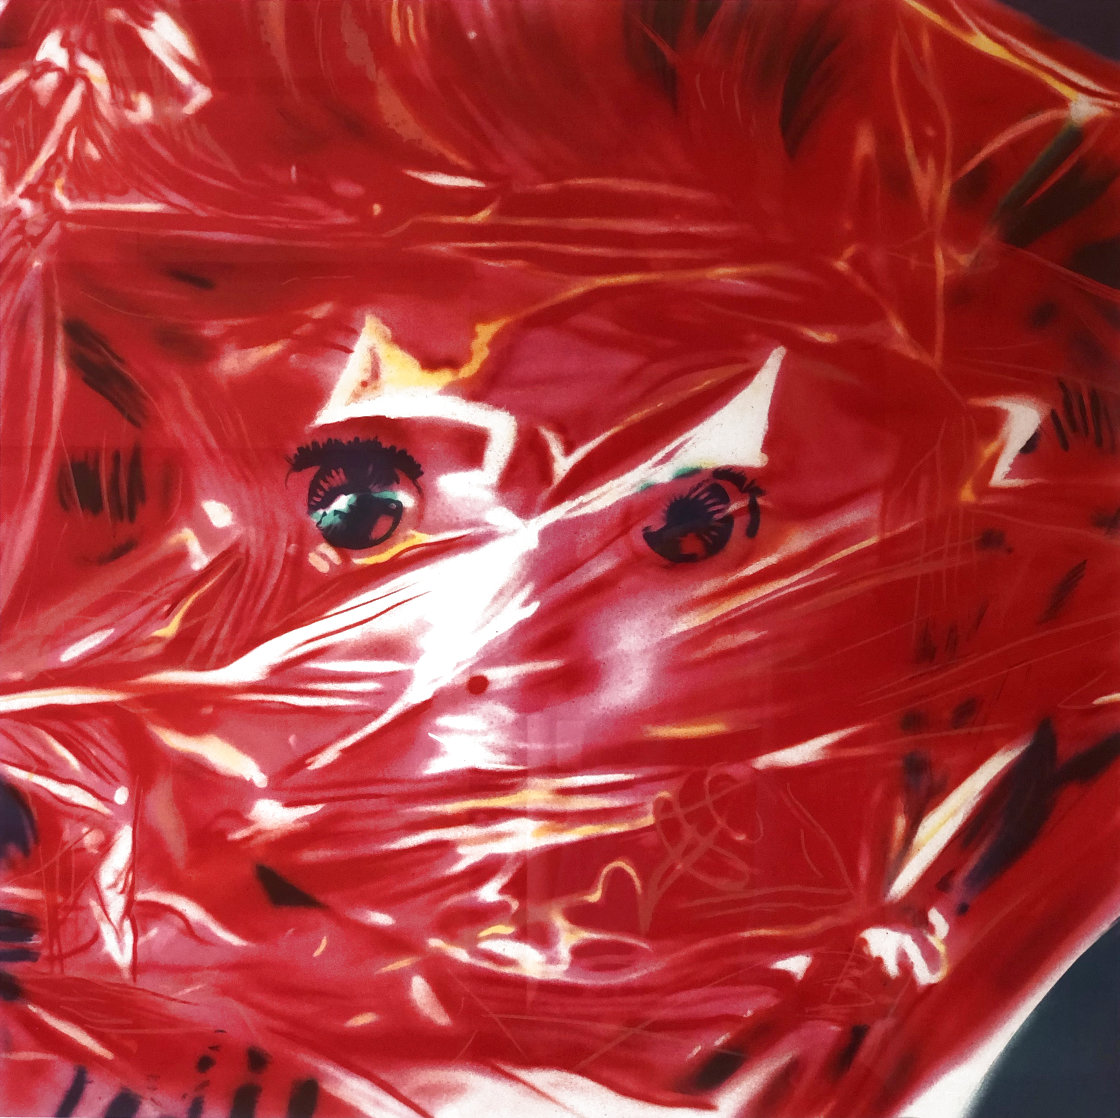 Gift Wrapped Doll  1993 AP Limited Edition Print by James Rosenquist